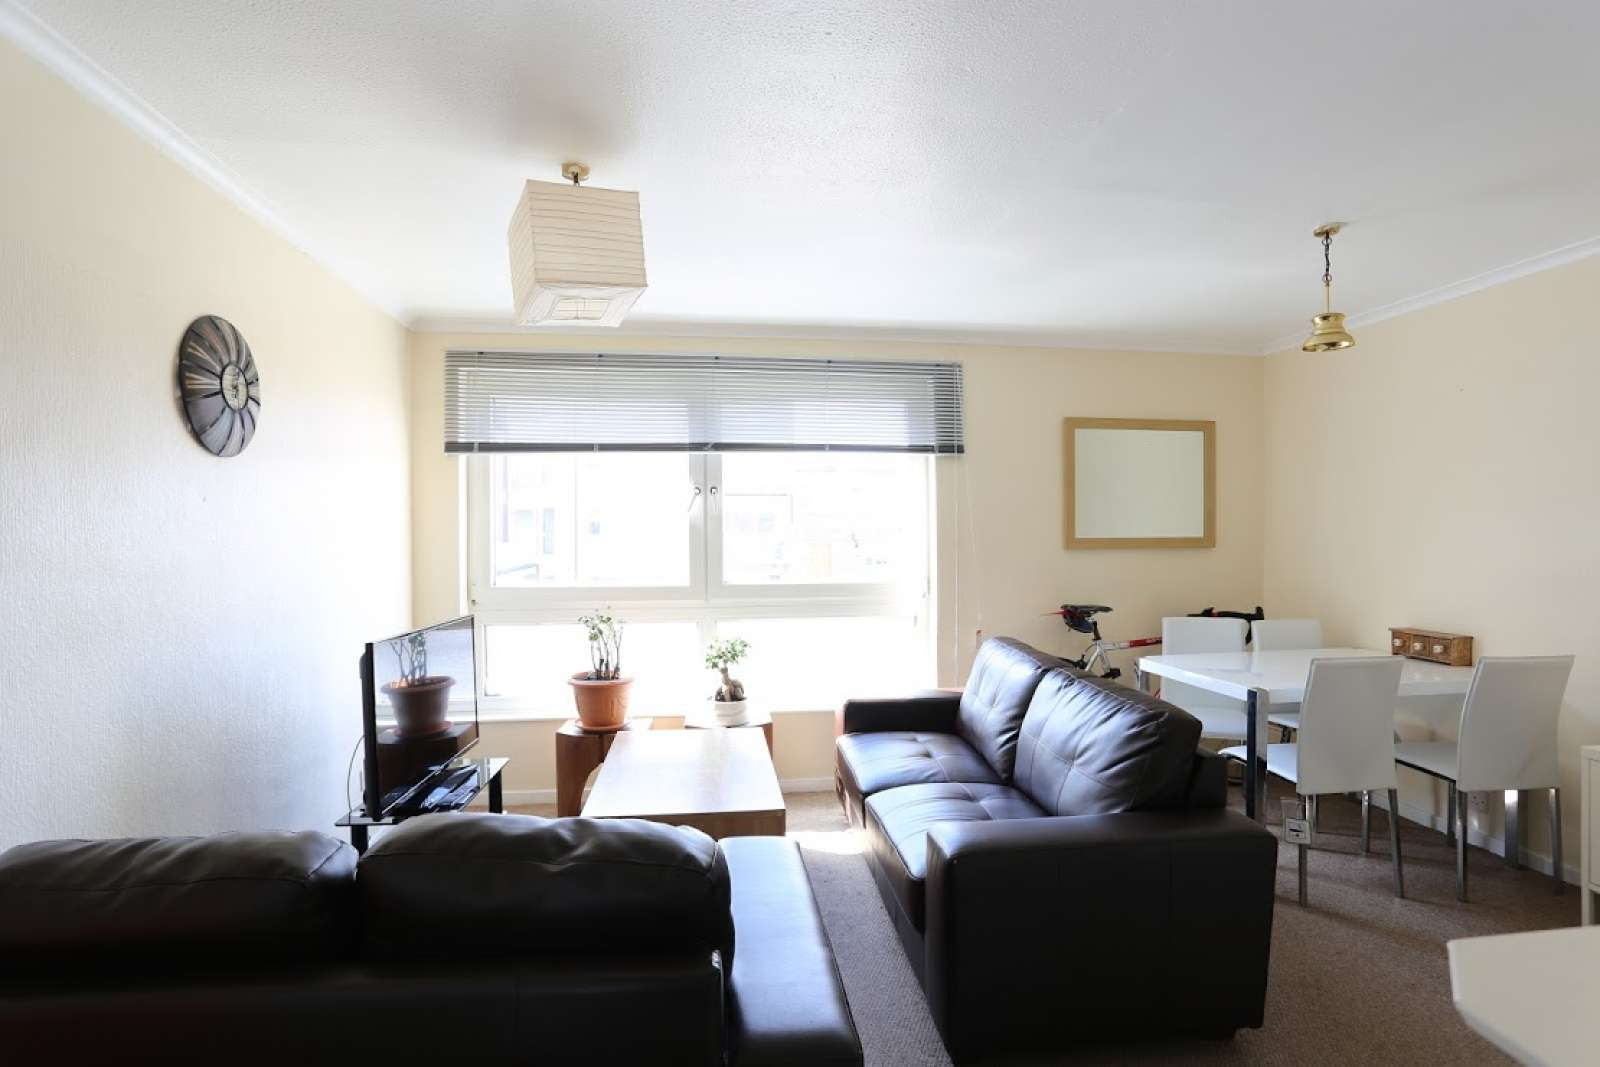 Rent Hotel Room For A Month London